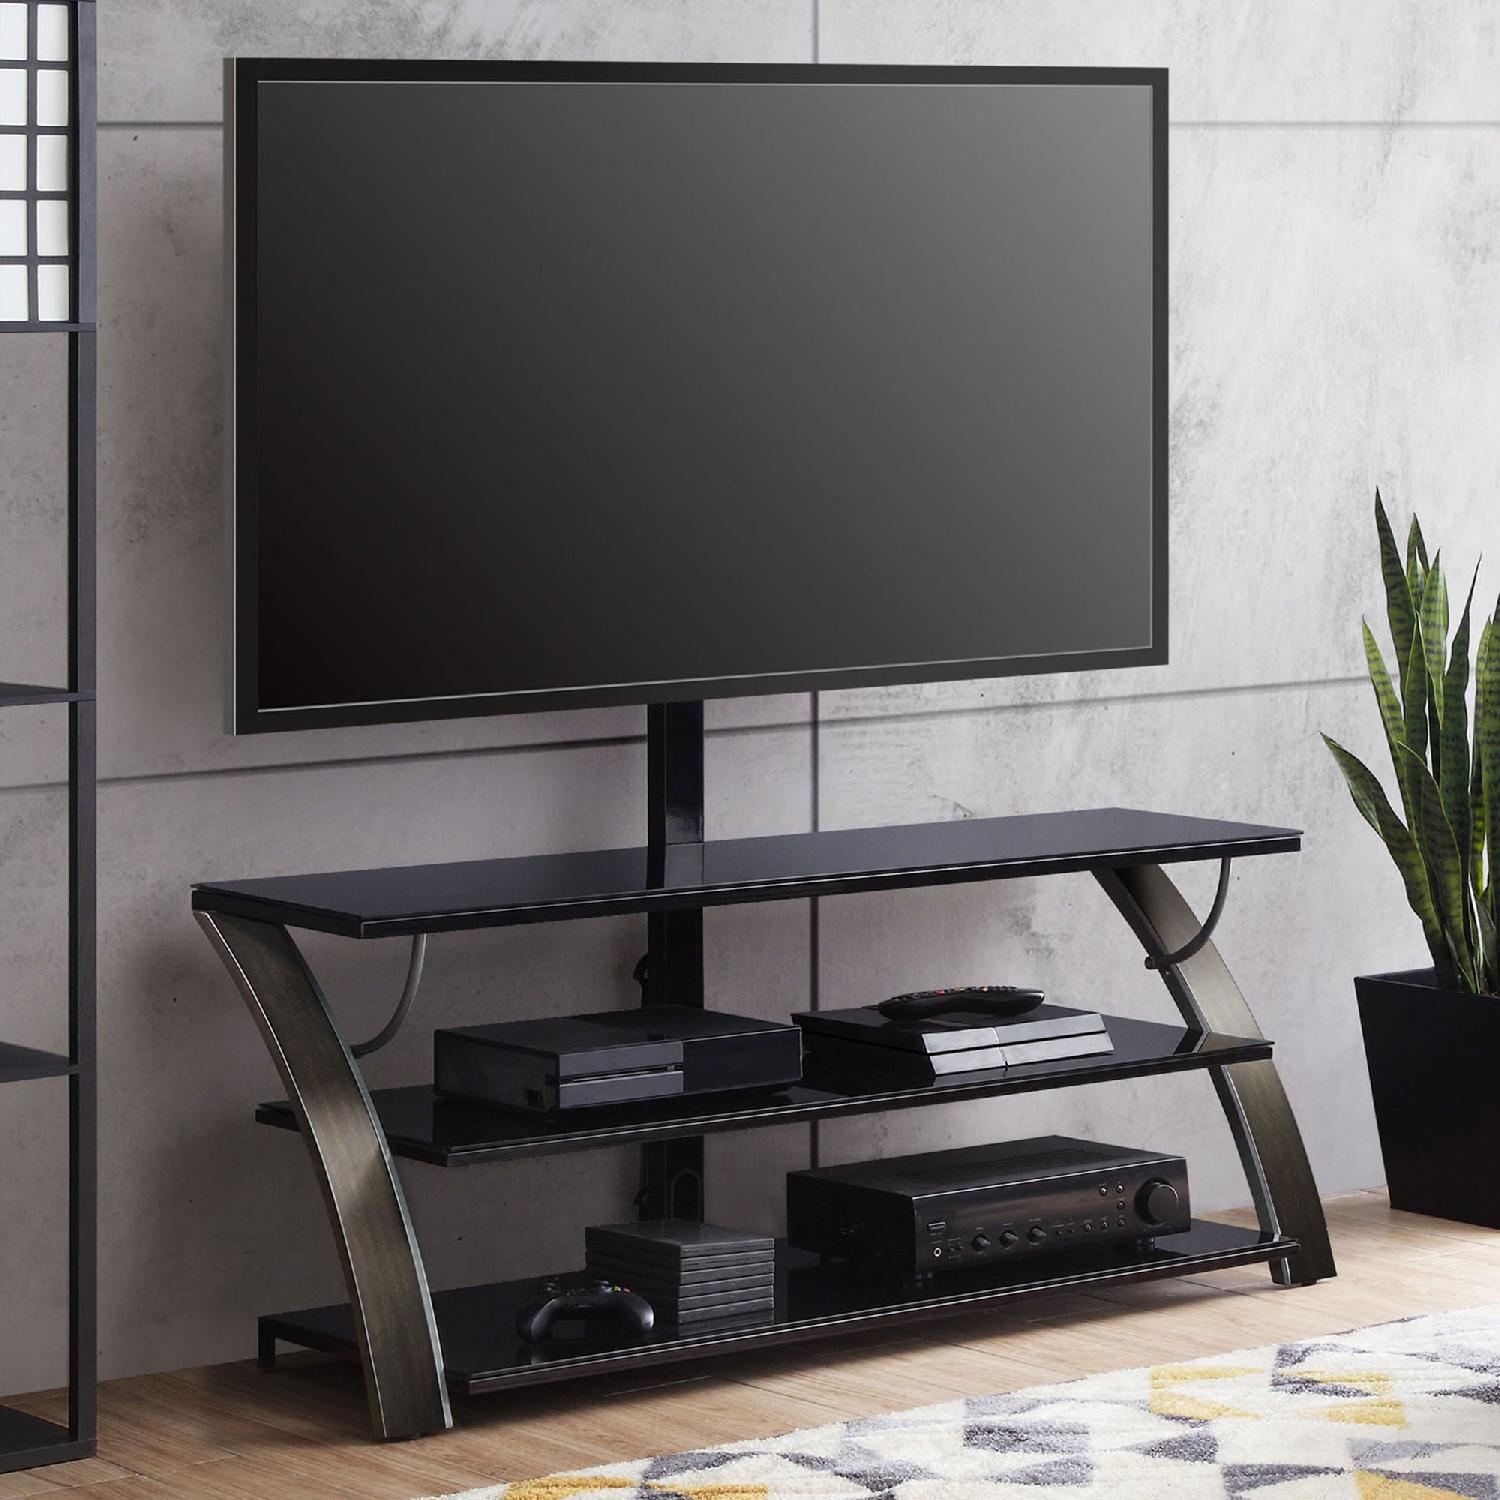 Whalen Furniture TV Stand upto 65 3-in-1 Flat Panel - image-4